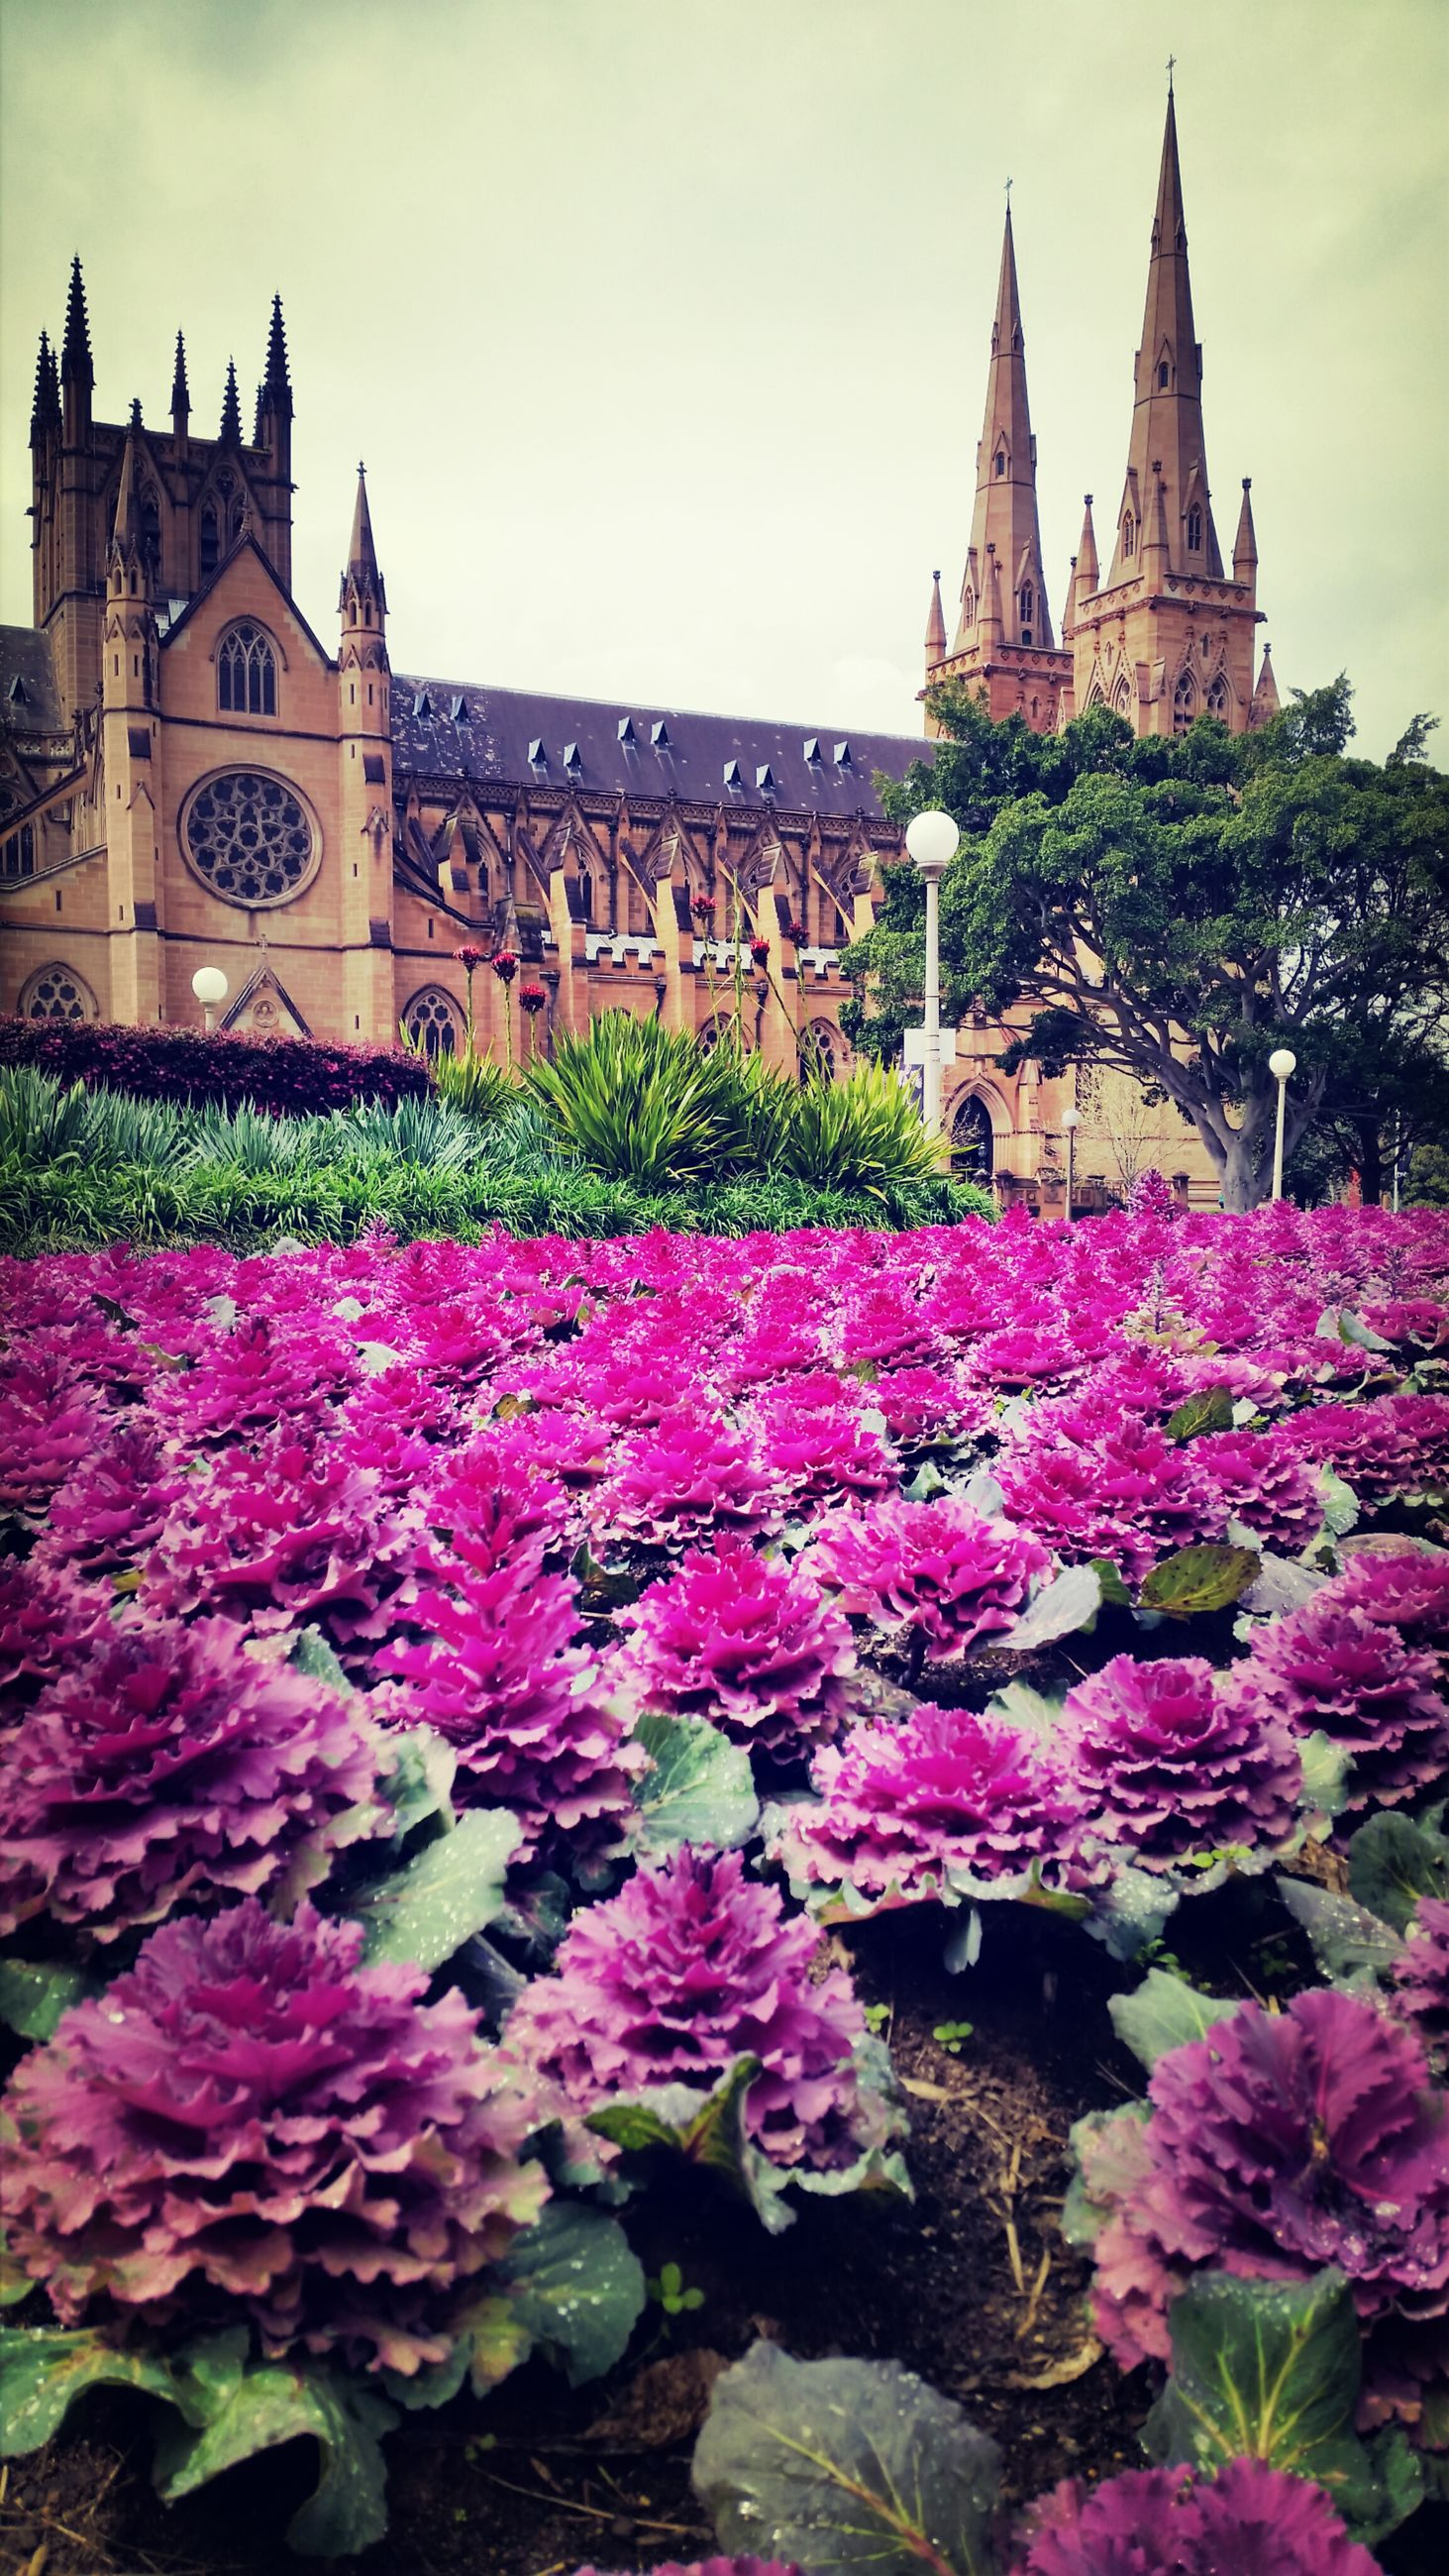 flower, building exterior, architecture, built structure, freshness, fragility, pink color, sky, growth, blooming, plant, place of worship, religion, petal, beauty in nature, nature, history, day, outdoors, famous place